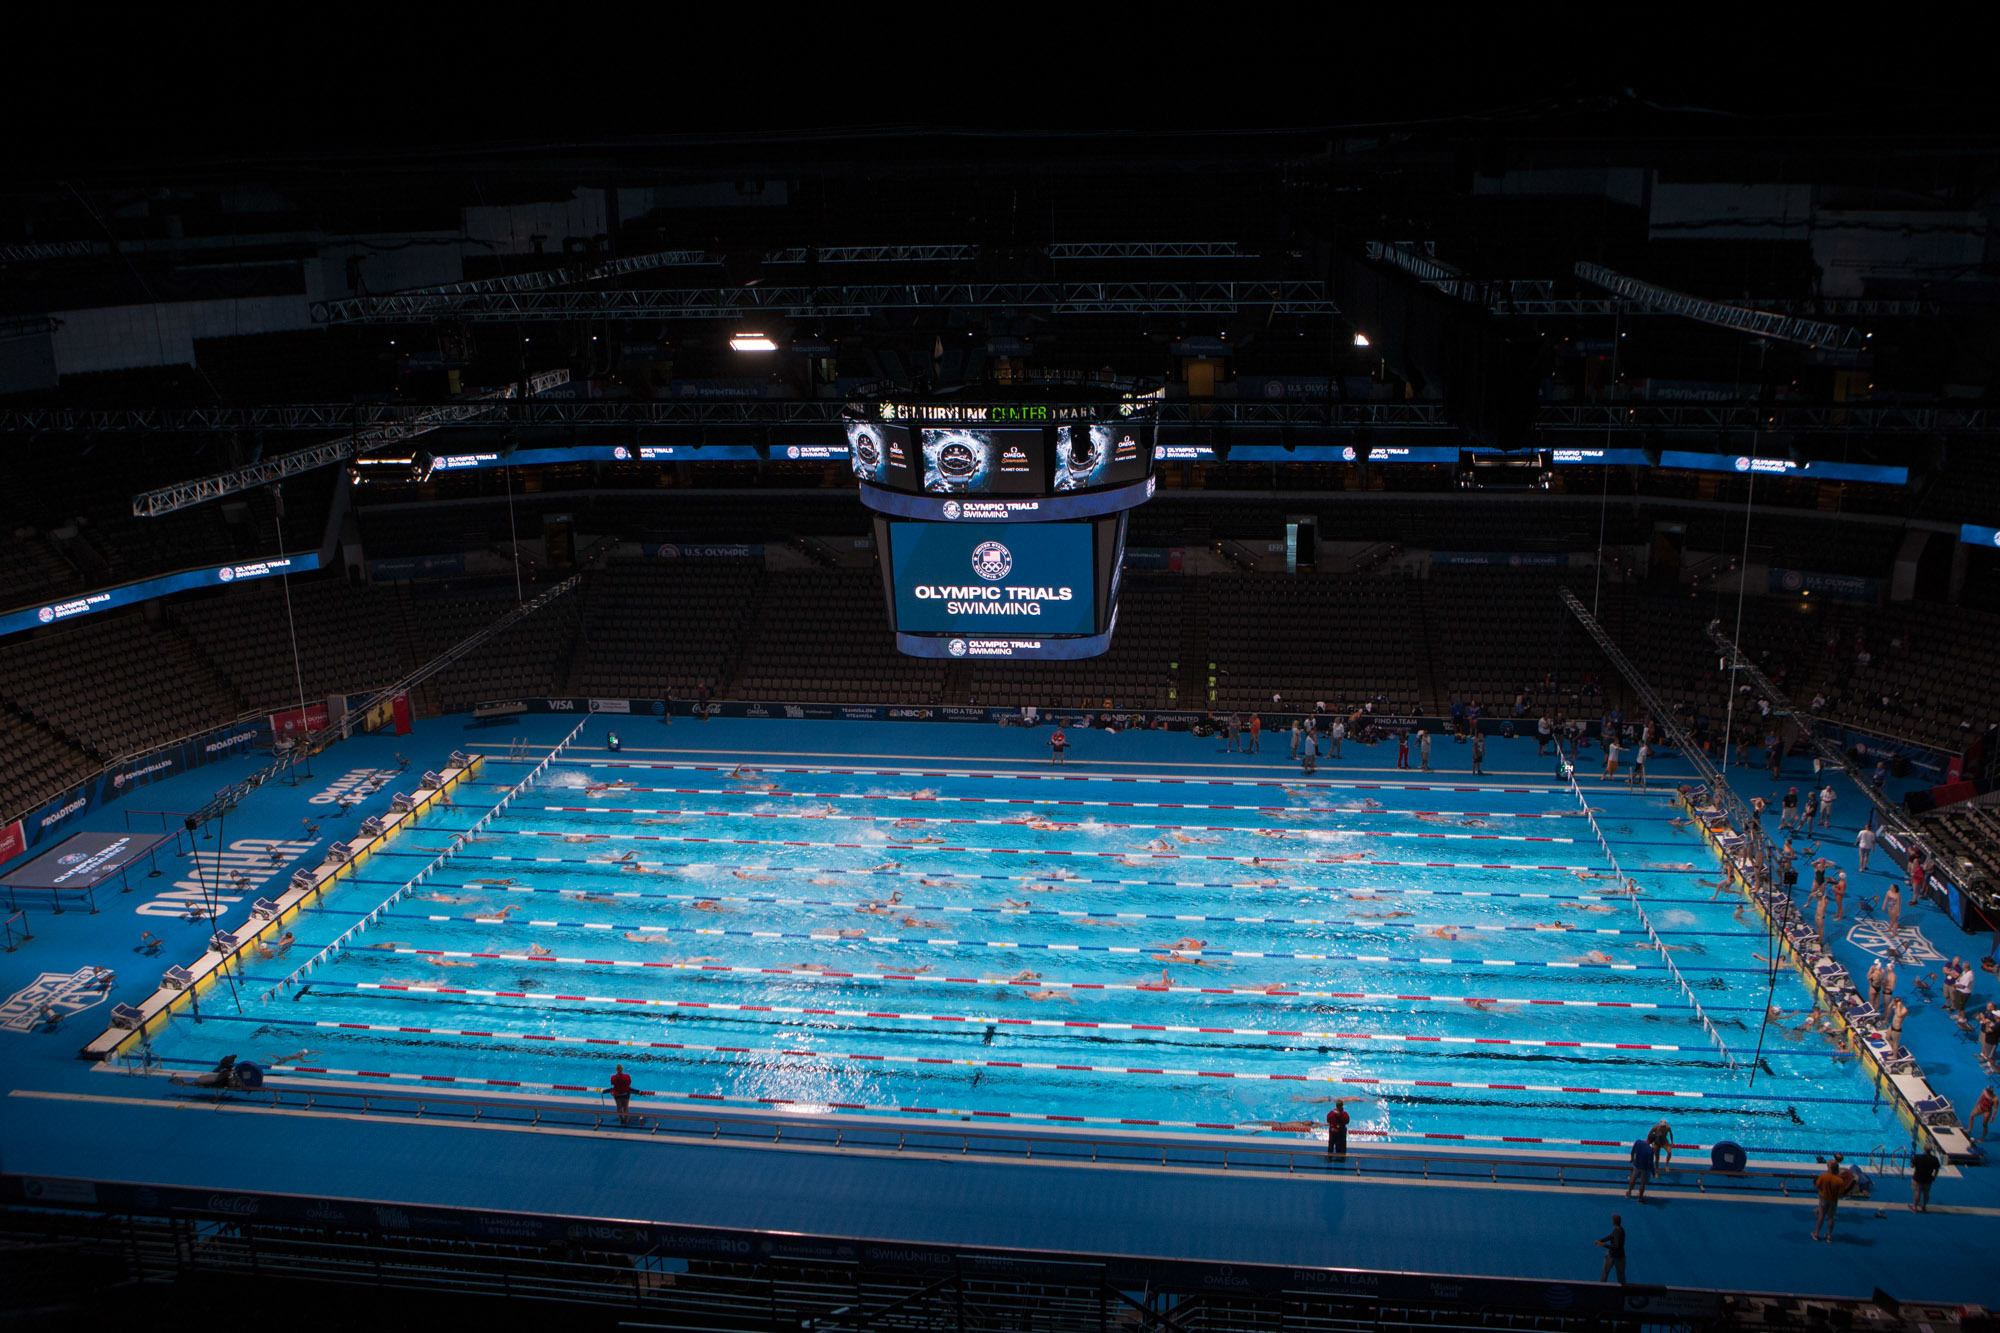 2016 olympic trials competition pool build video